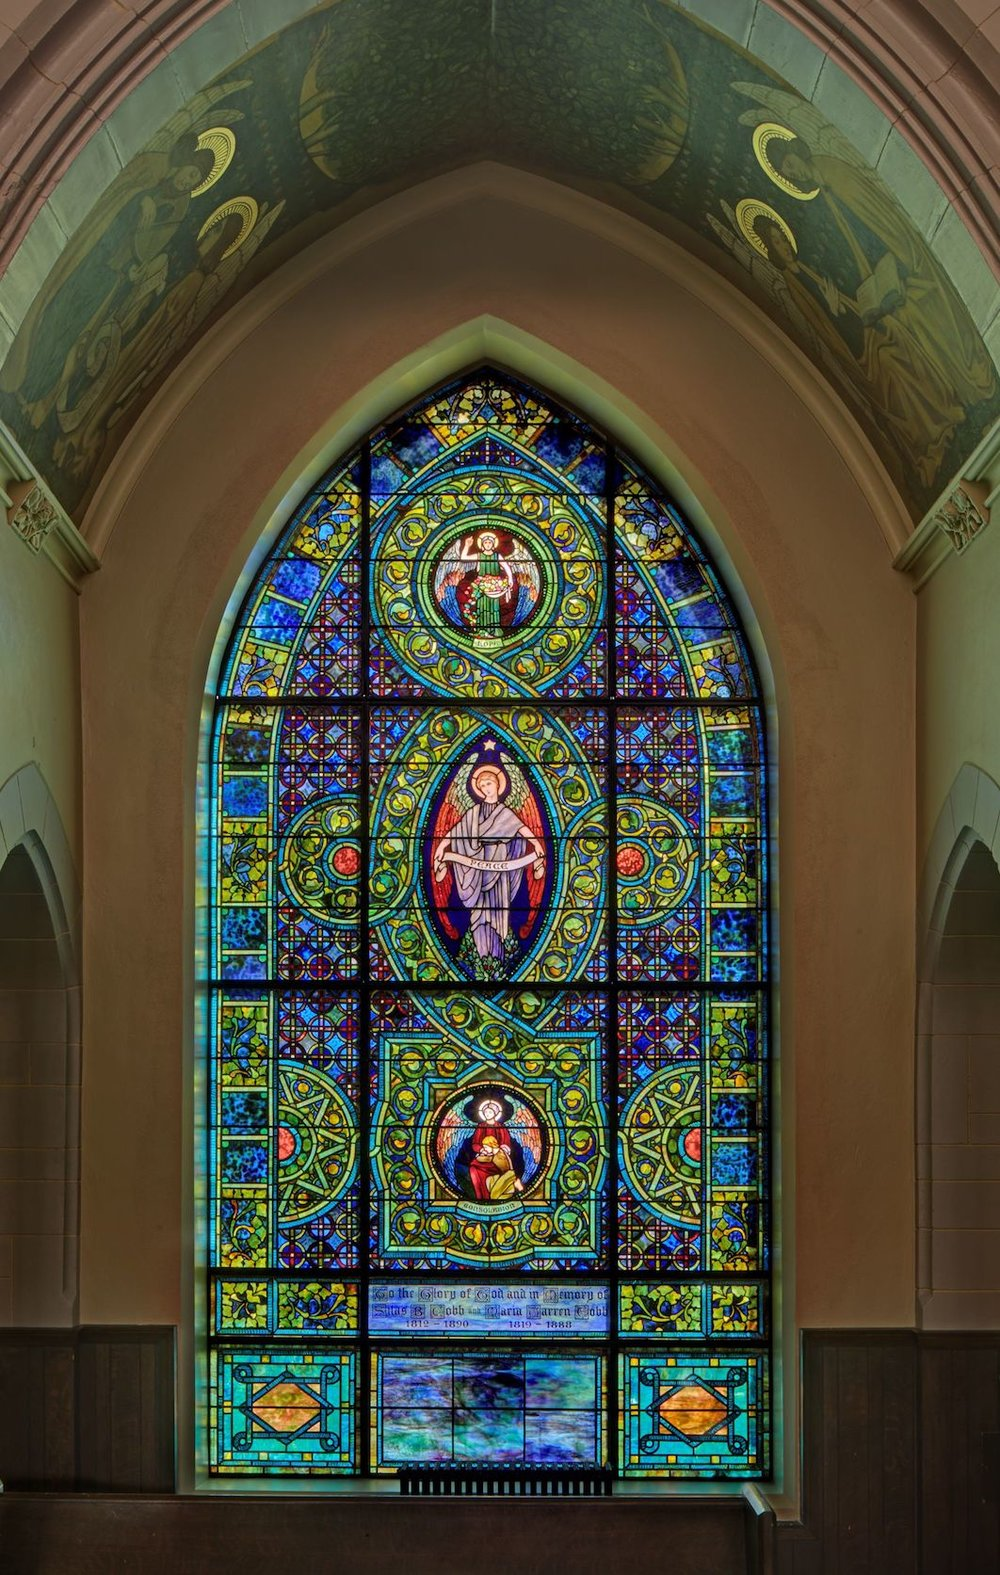 Restored 1903 Tiffany Peace Window Photo credit: Mark F. Heffron